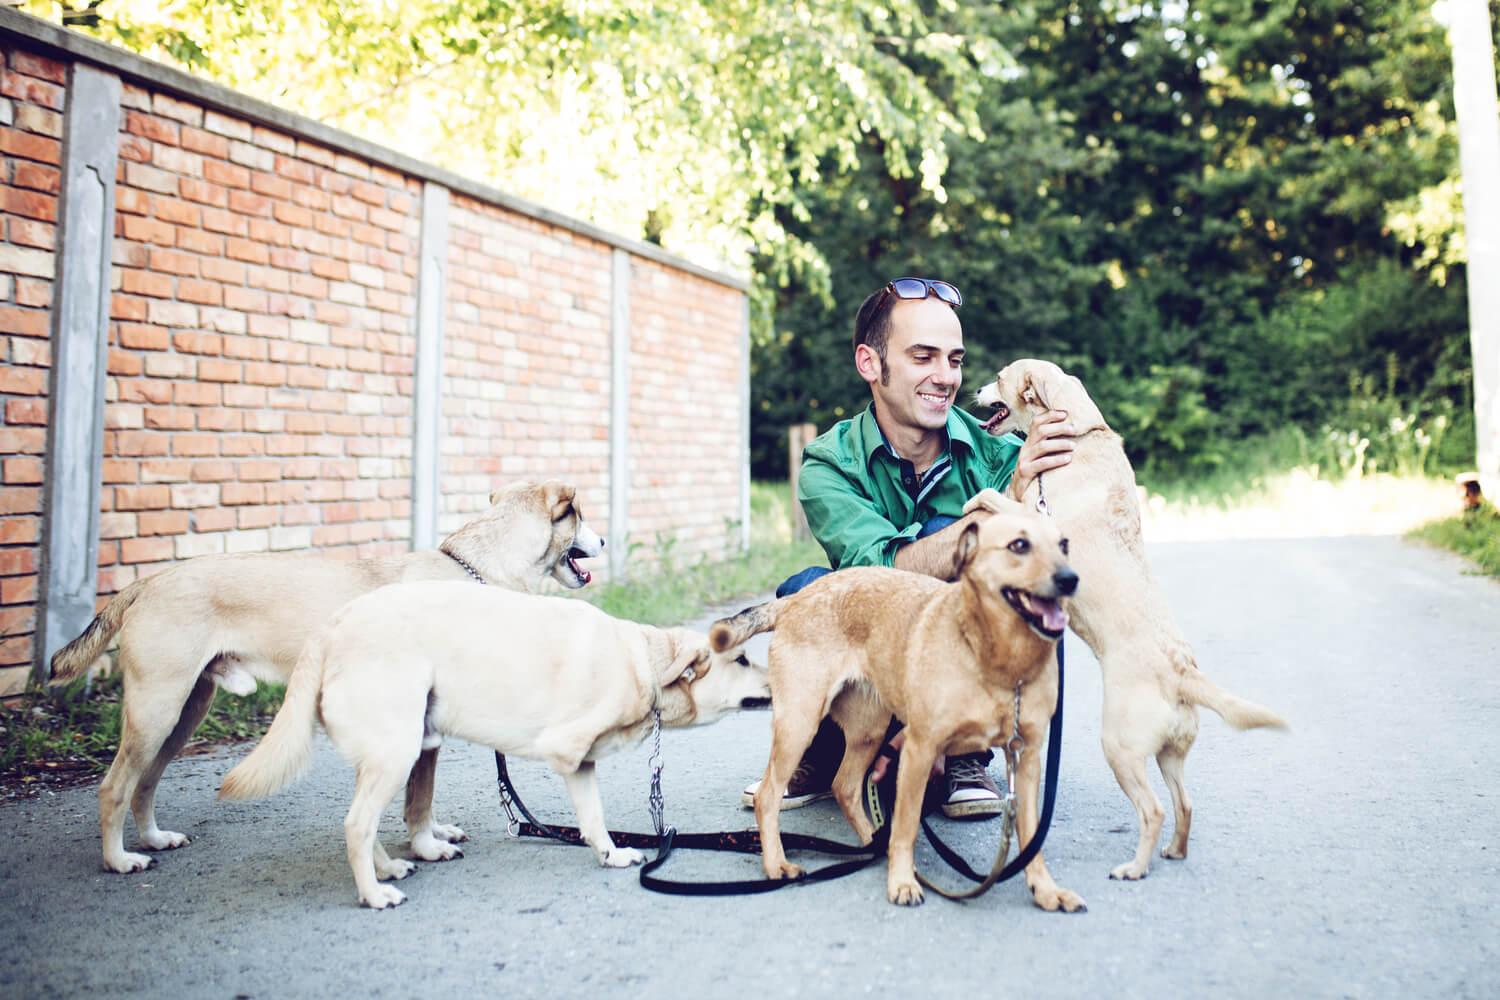 5 Pet Amenities To Attract Pet Owners and Keep Residents Happy